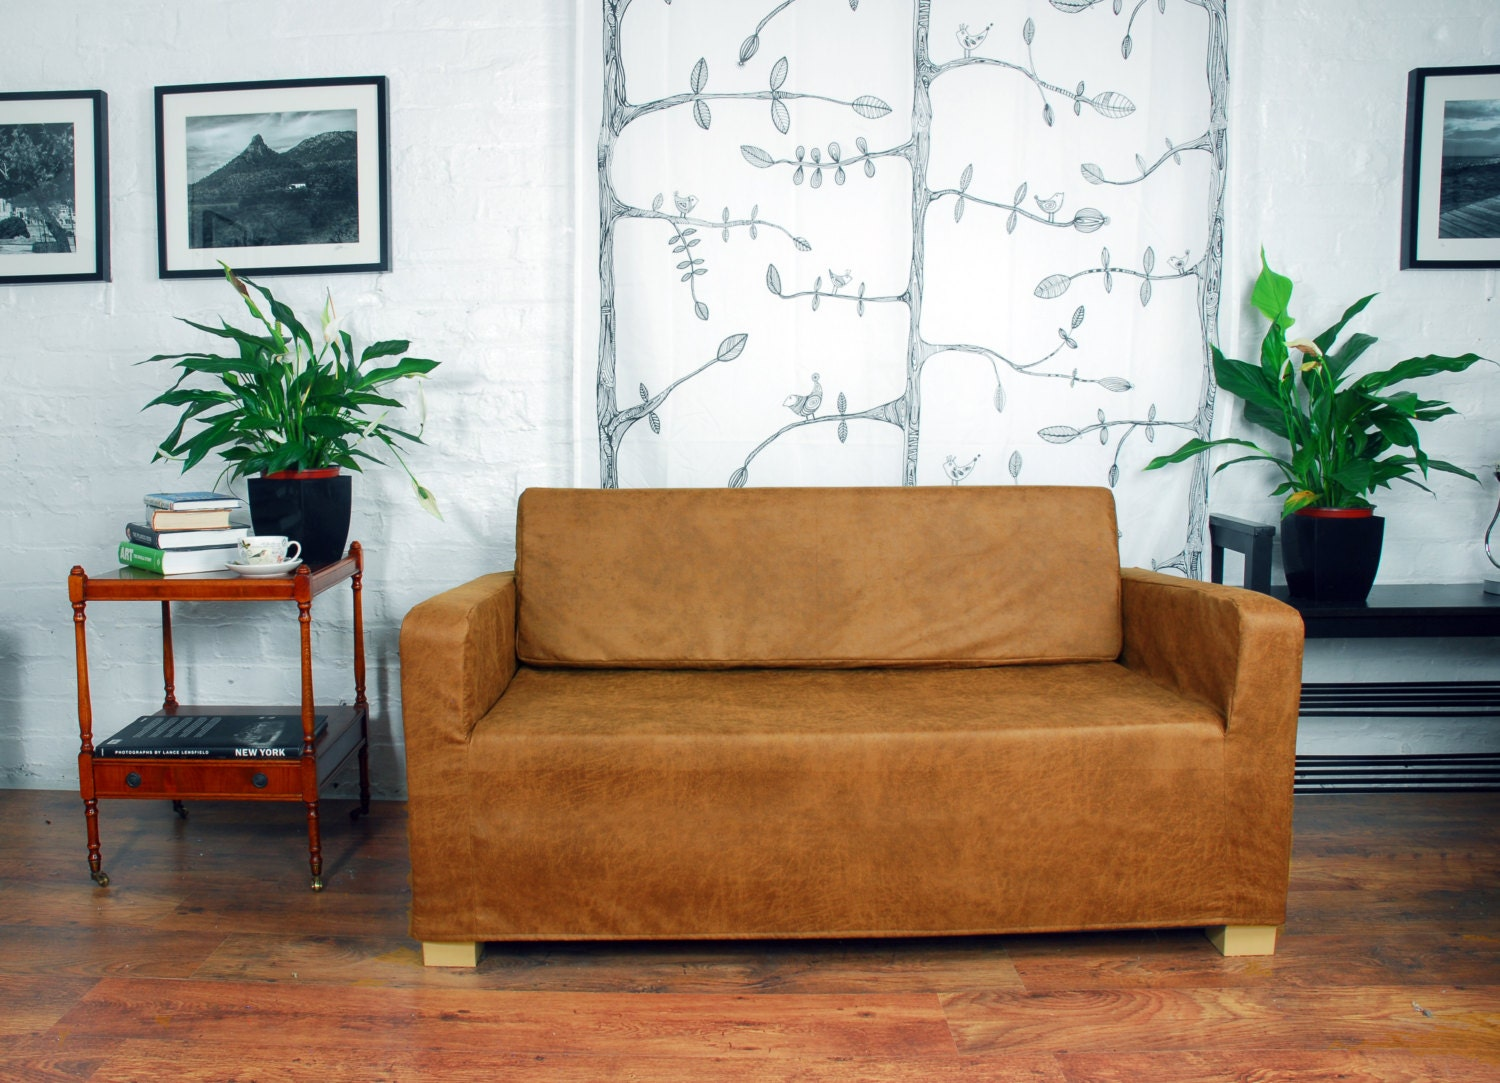 Slip Cover For The Ikea Klobo Sofa In Distressed Leather Look